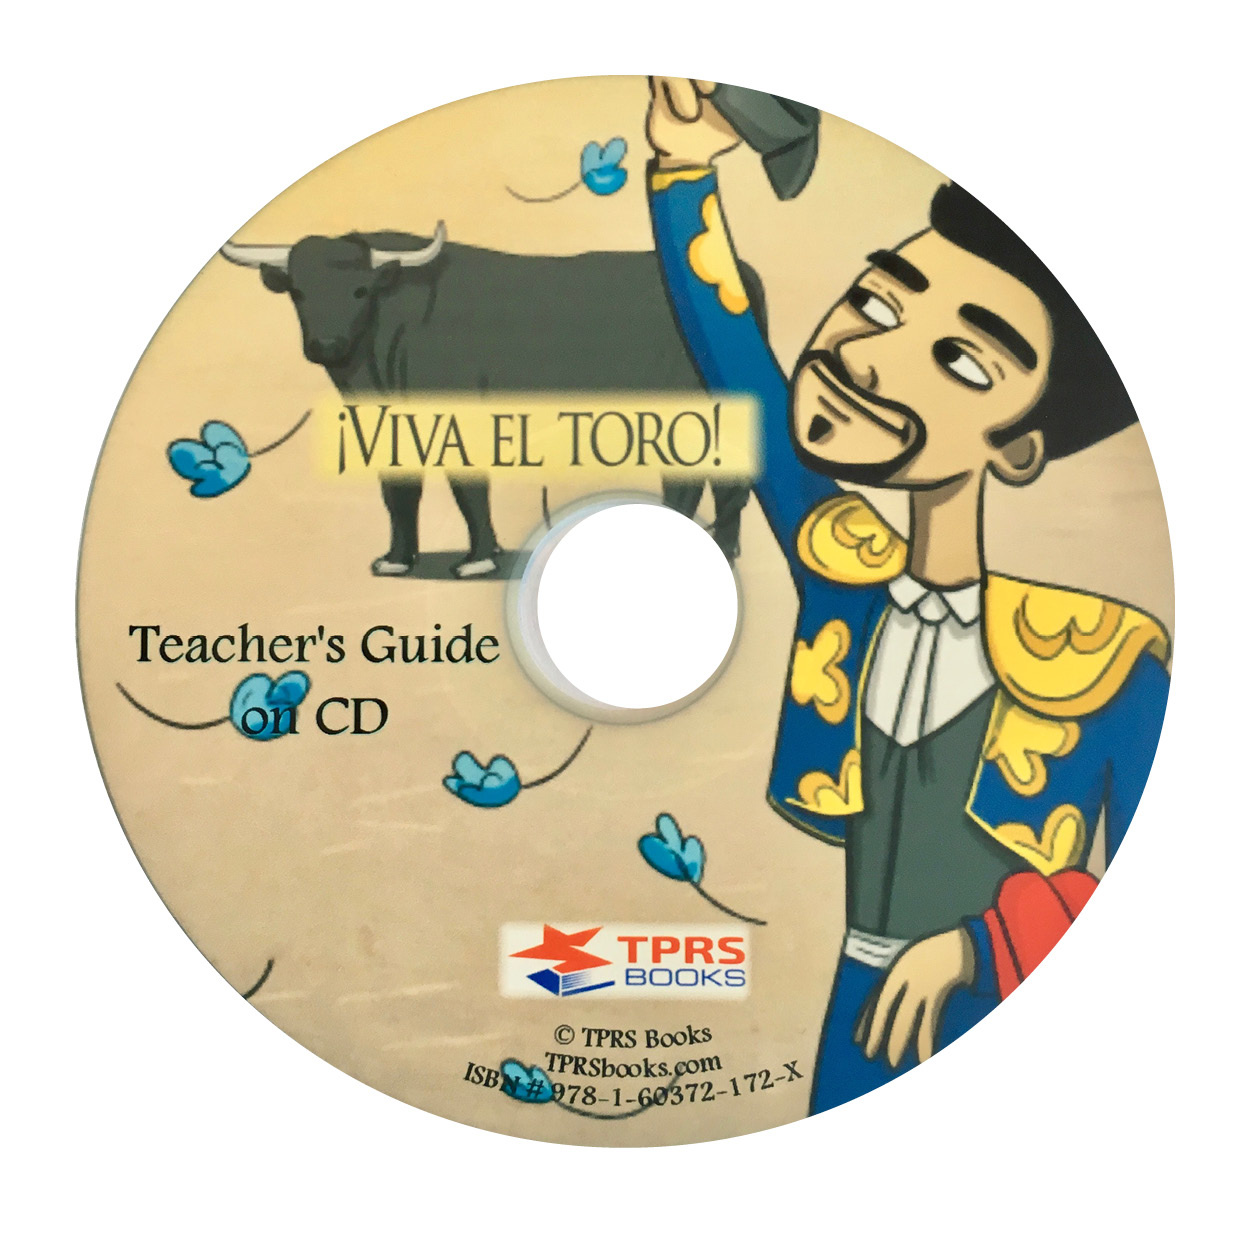 Viva el toro - Teacher's Guide